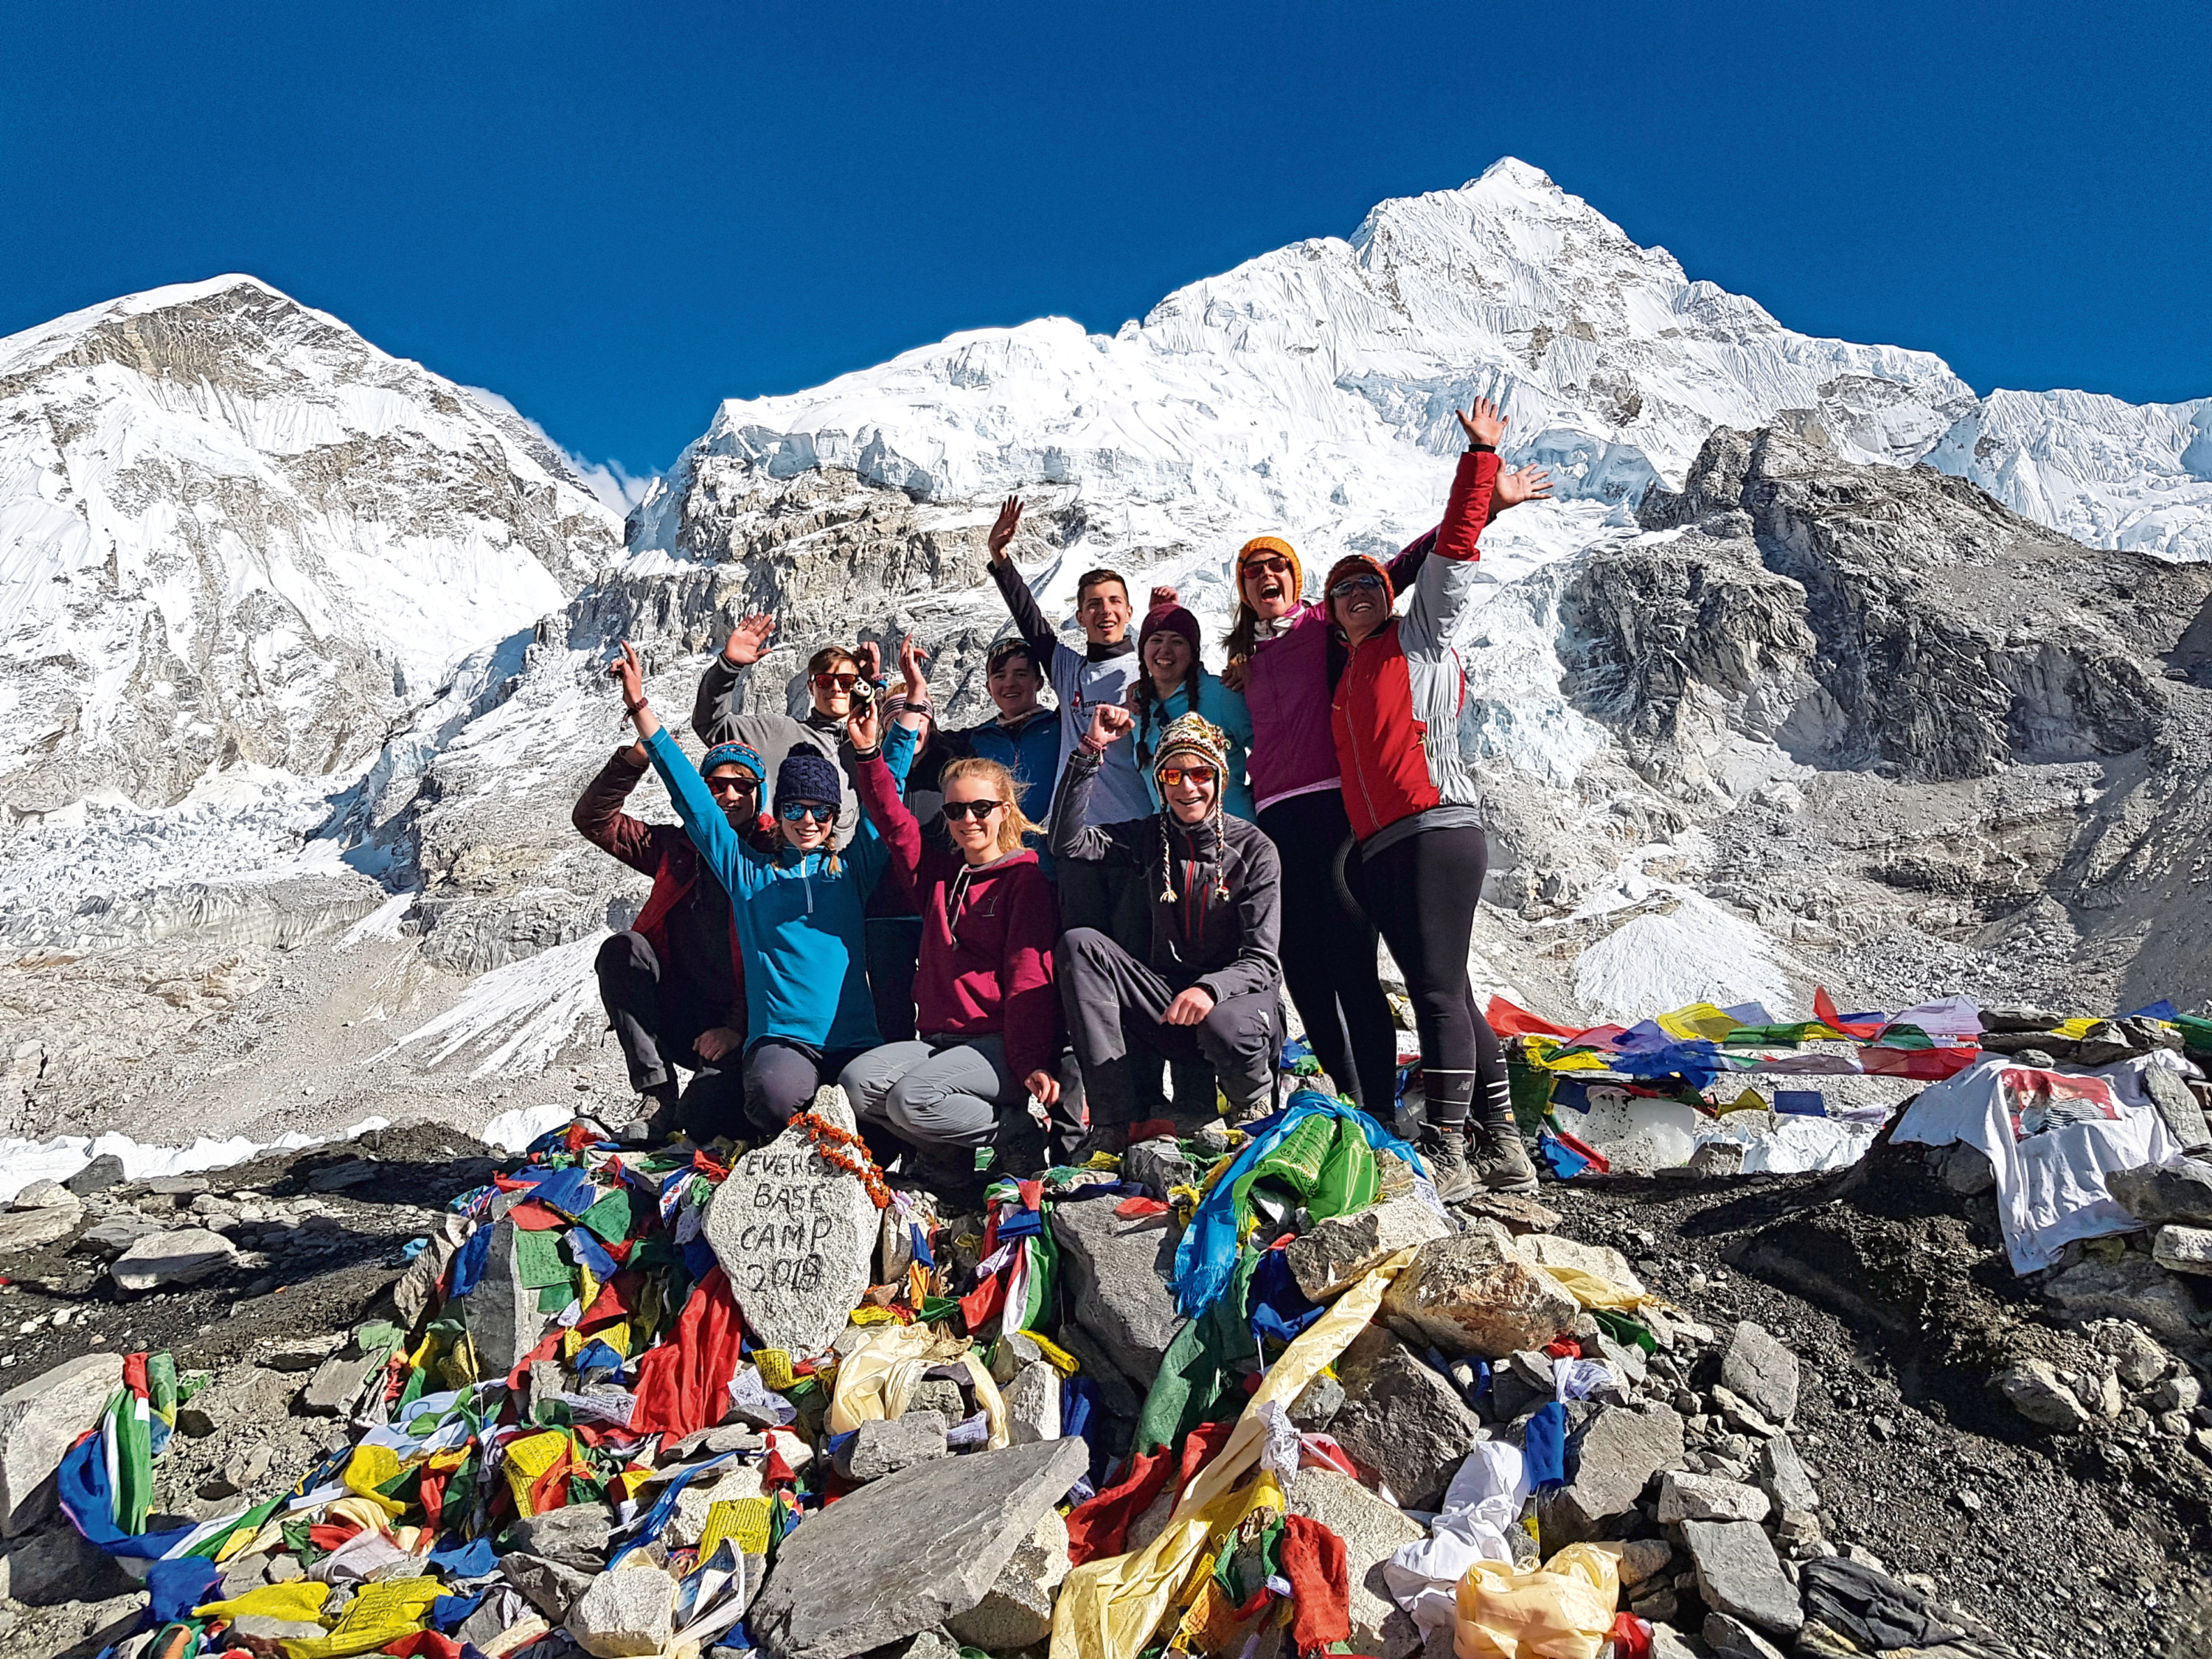 The pupils and staff from Albyn School at Everest Base Camp after their achievement